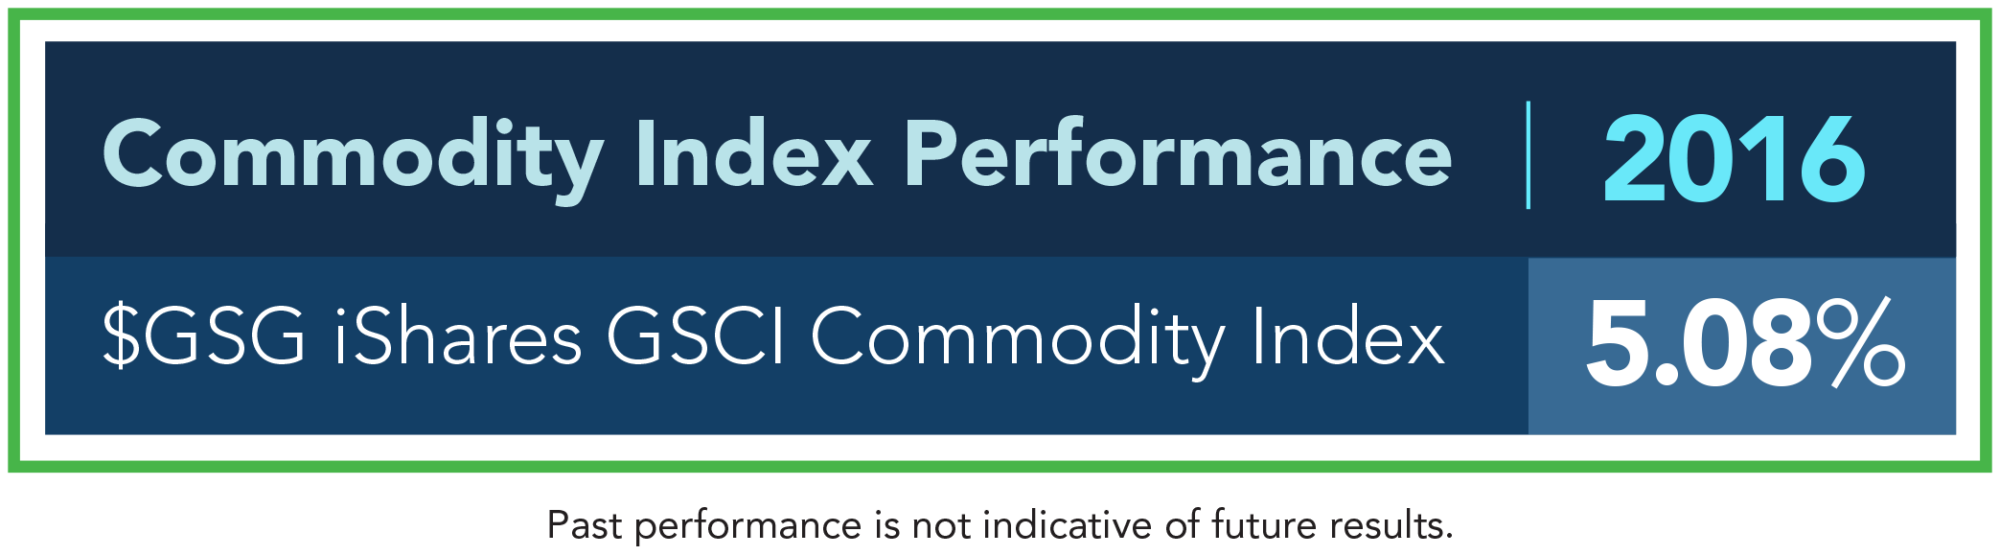 commodities_performance_1